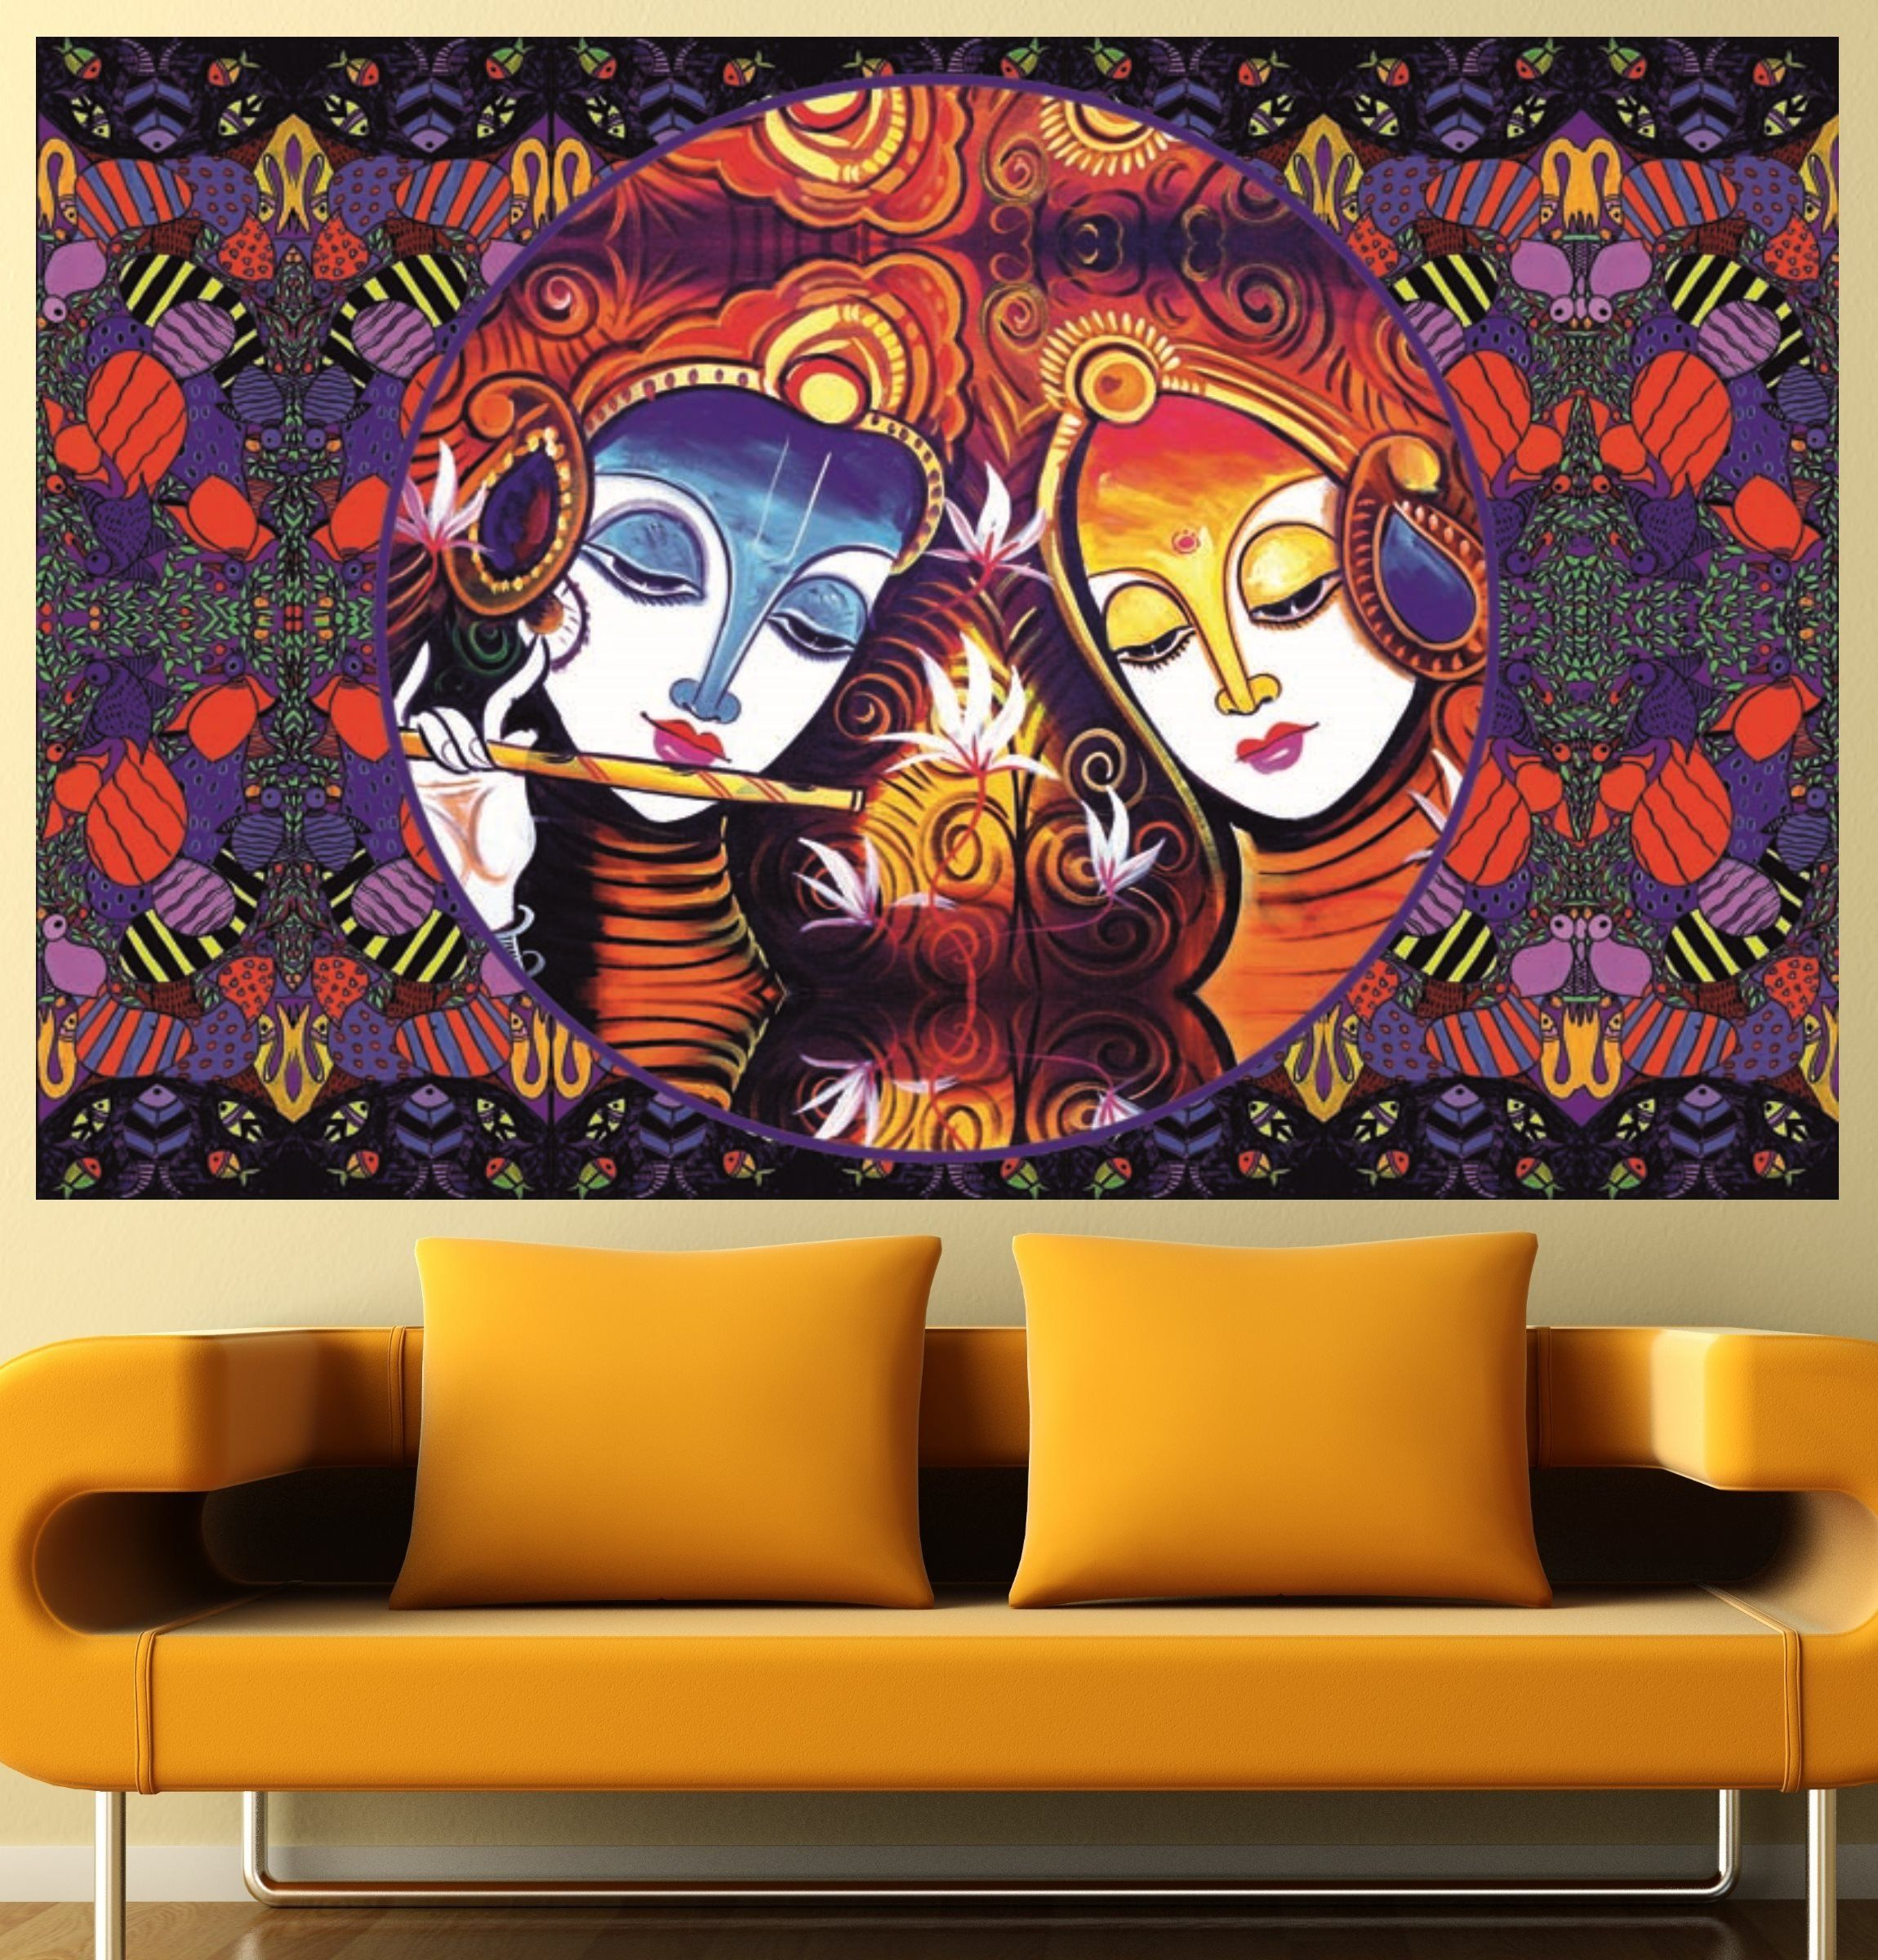 ARTWORK Exclusive Radha Krishna Deity Wall Decal Print Poster, Easy To  Peel And Stick Wall Art, Self Adhesive Vinyl Sticker, Waterproof Wallpaper  Art Mural. Part 39